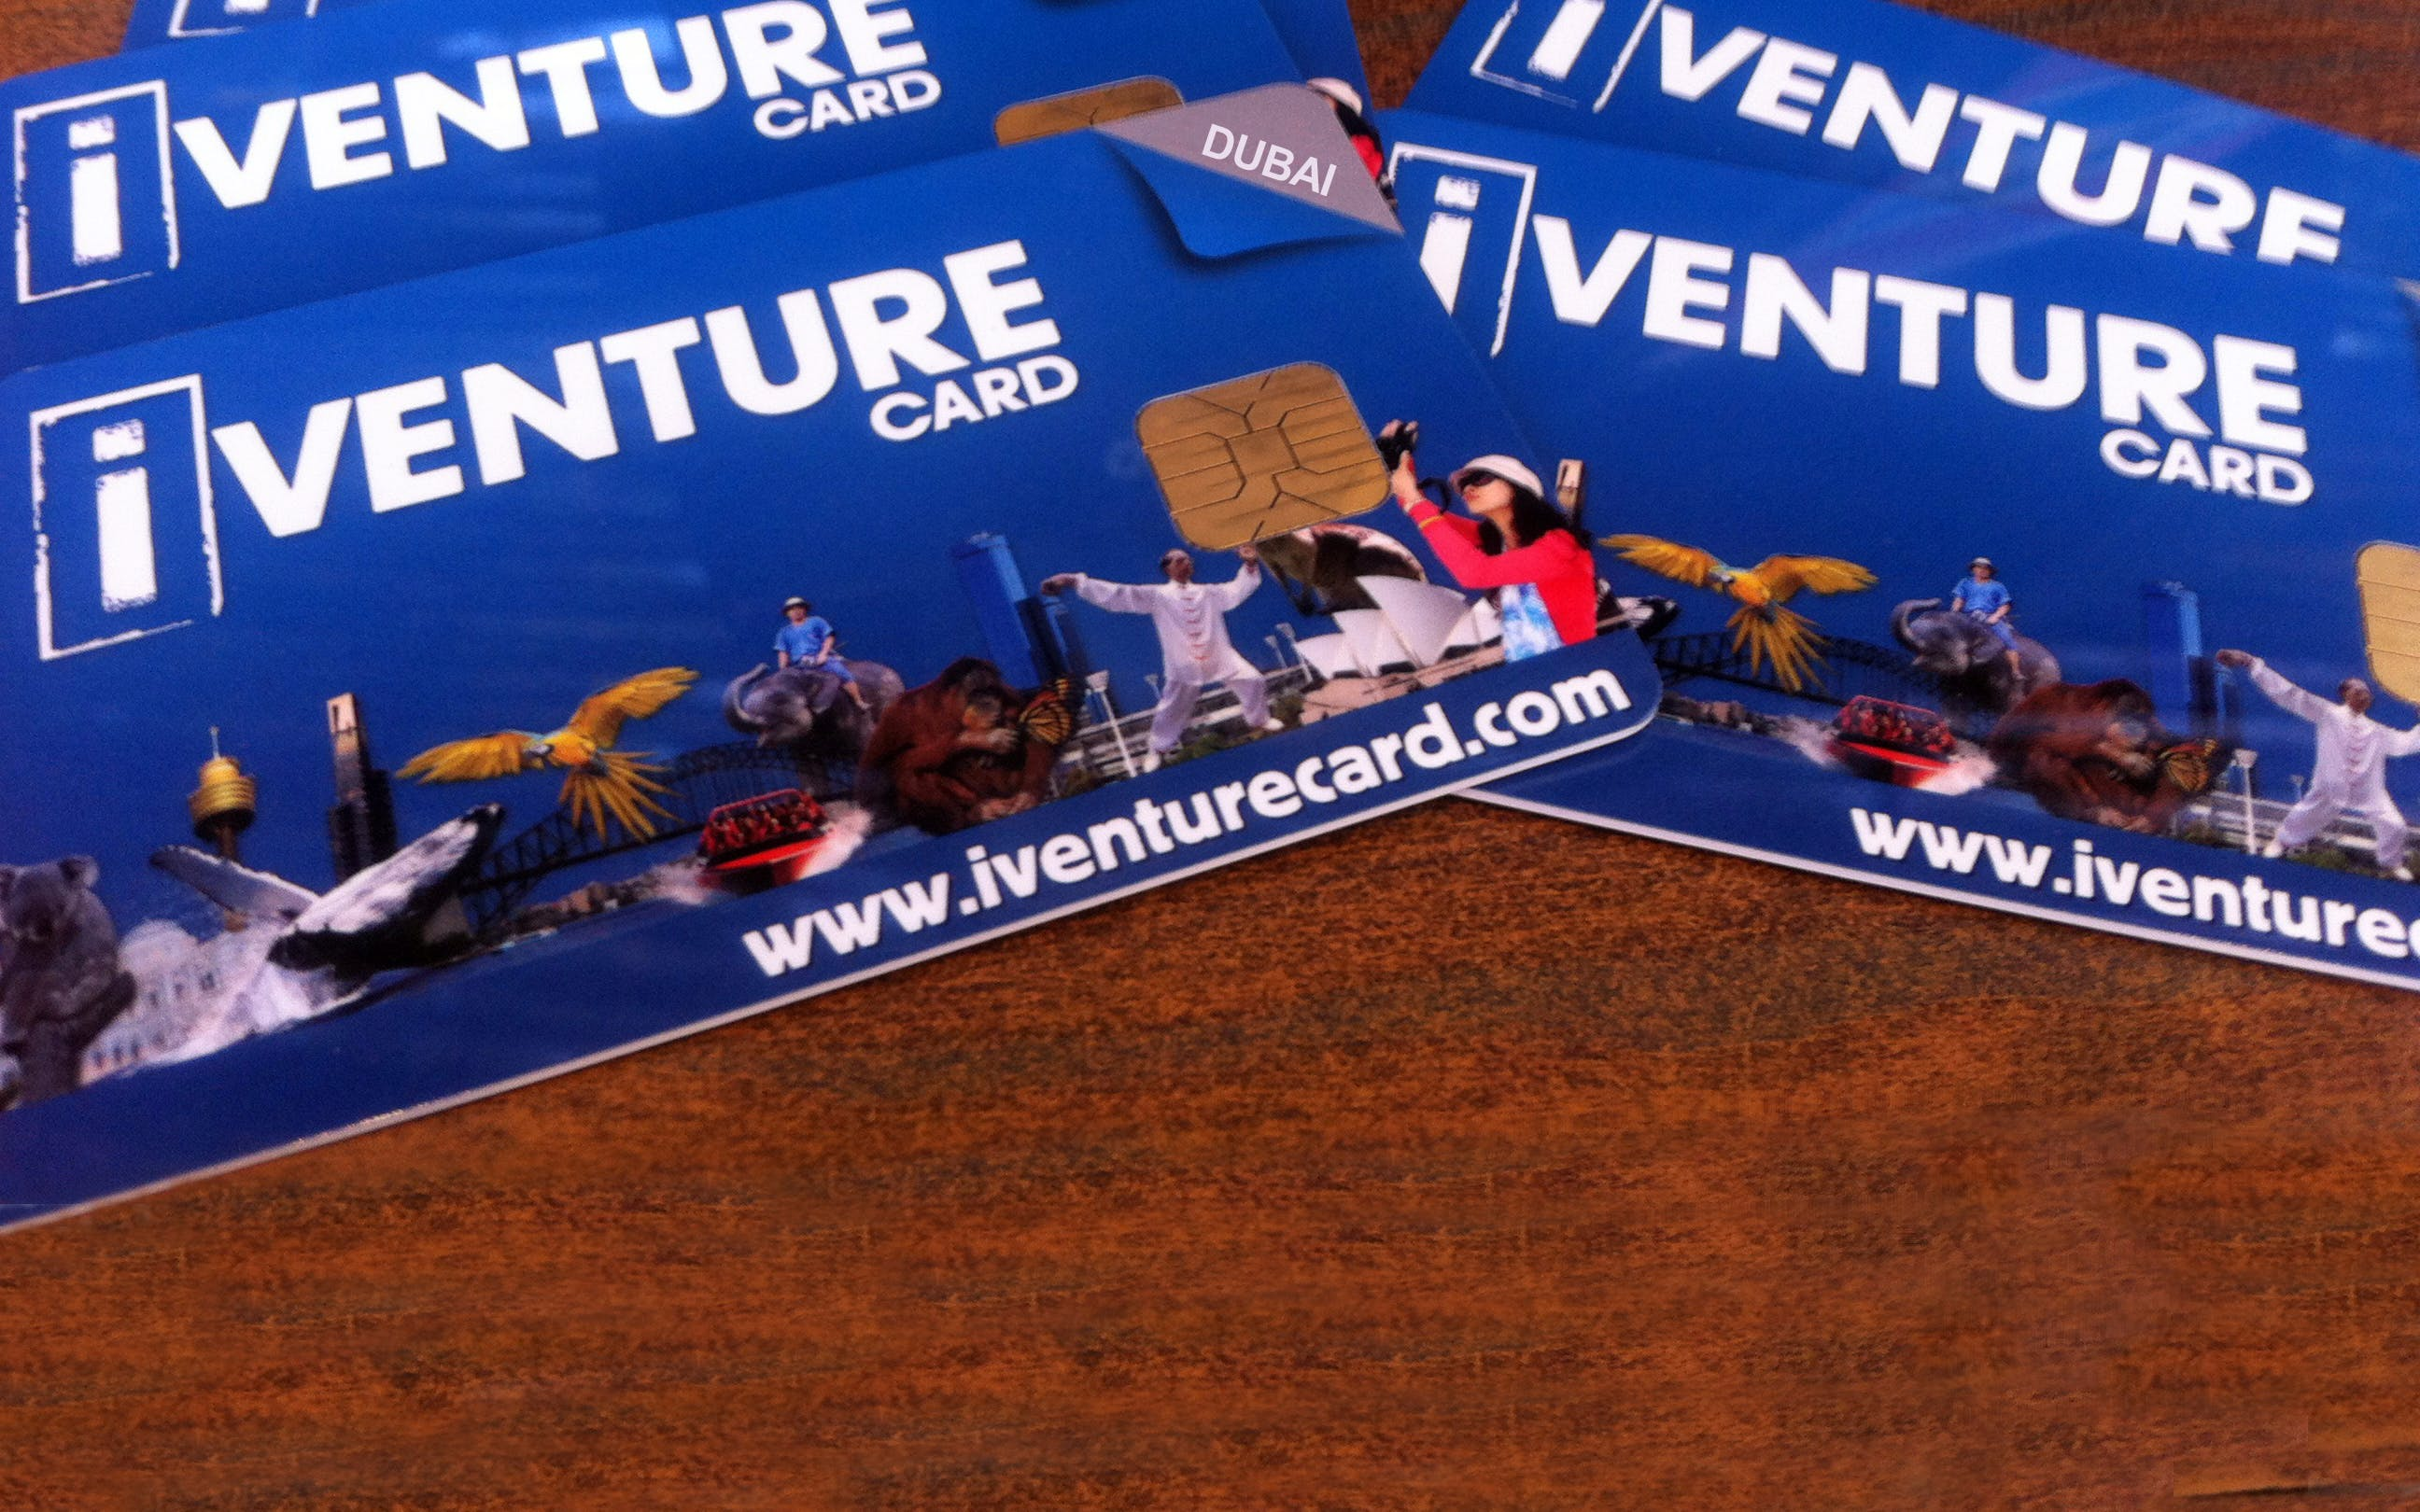 iVenture Unlimited Attractions Pass Dubai